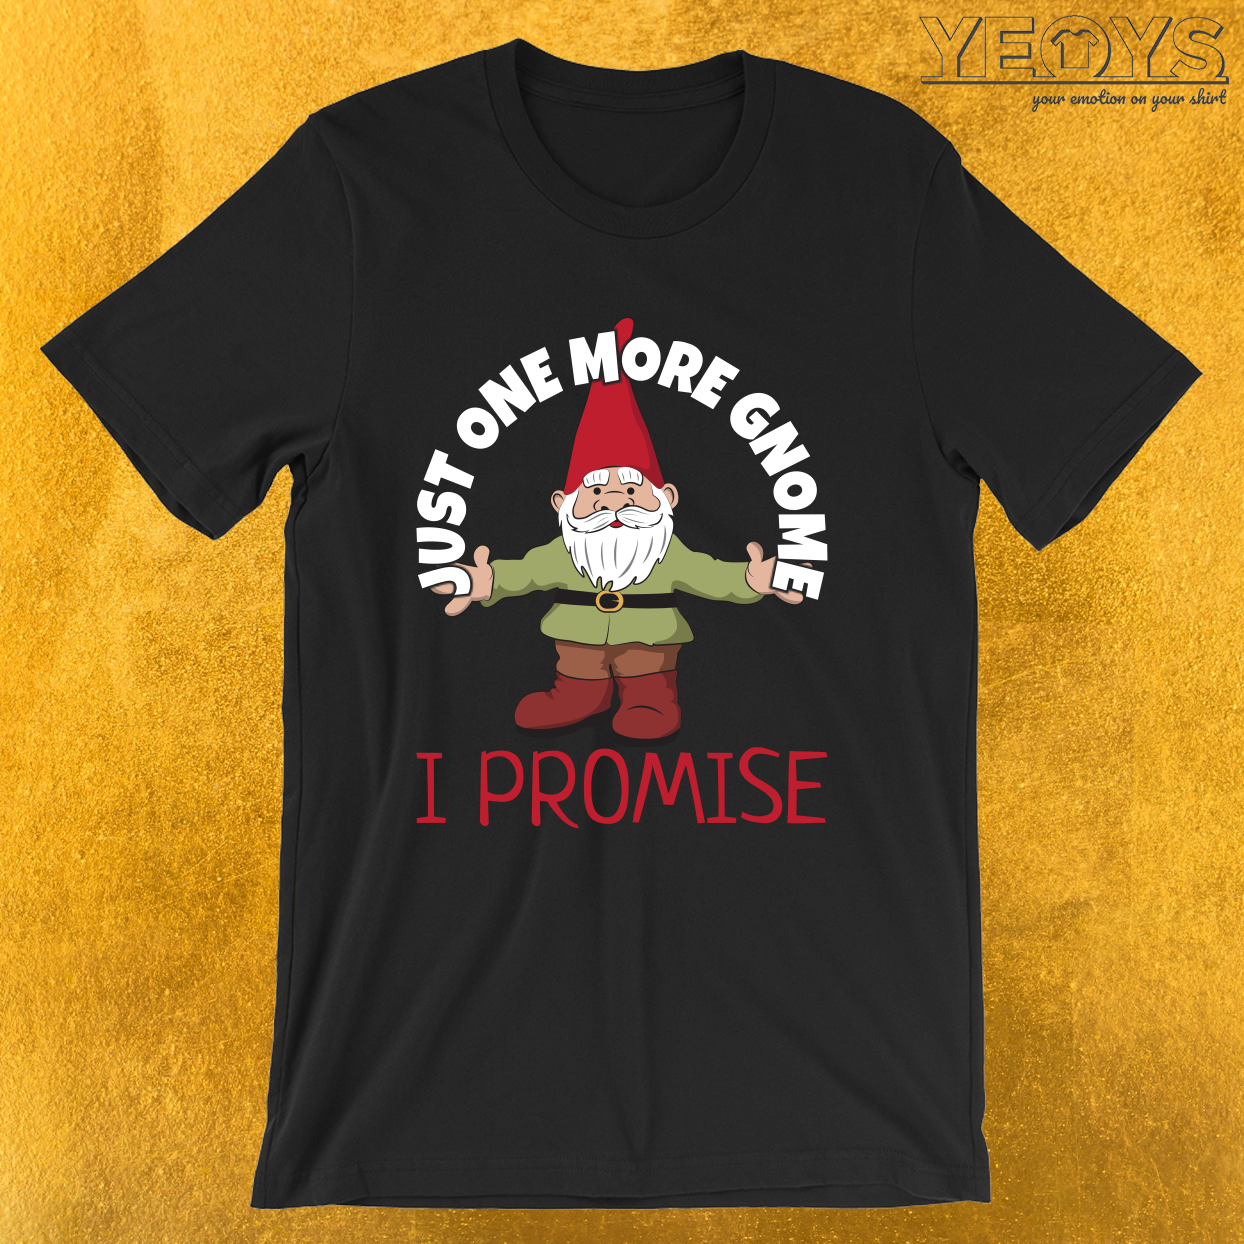 Just One More Gnome I Promise – Funny Gnome Tee